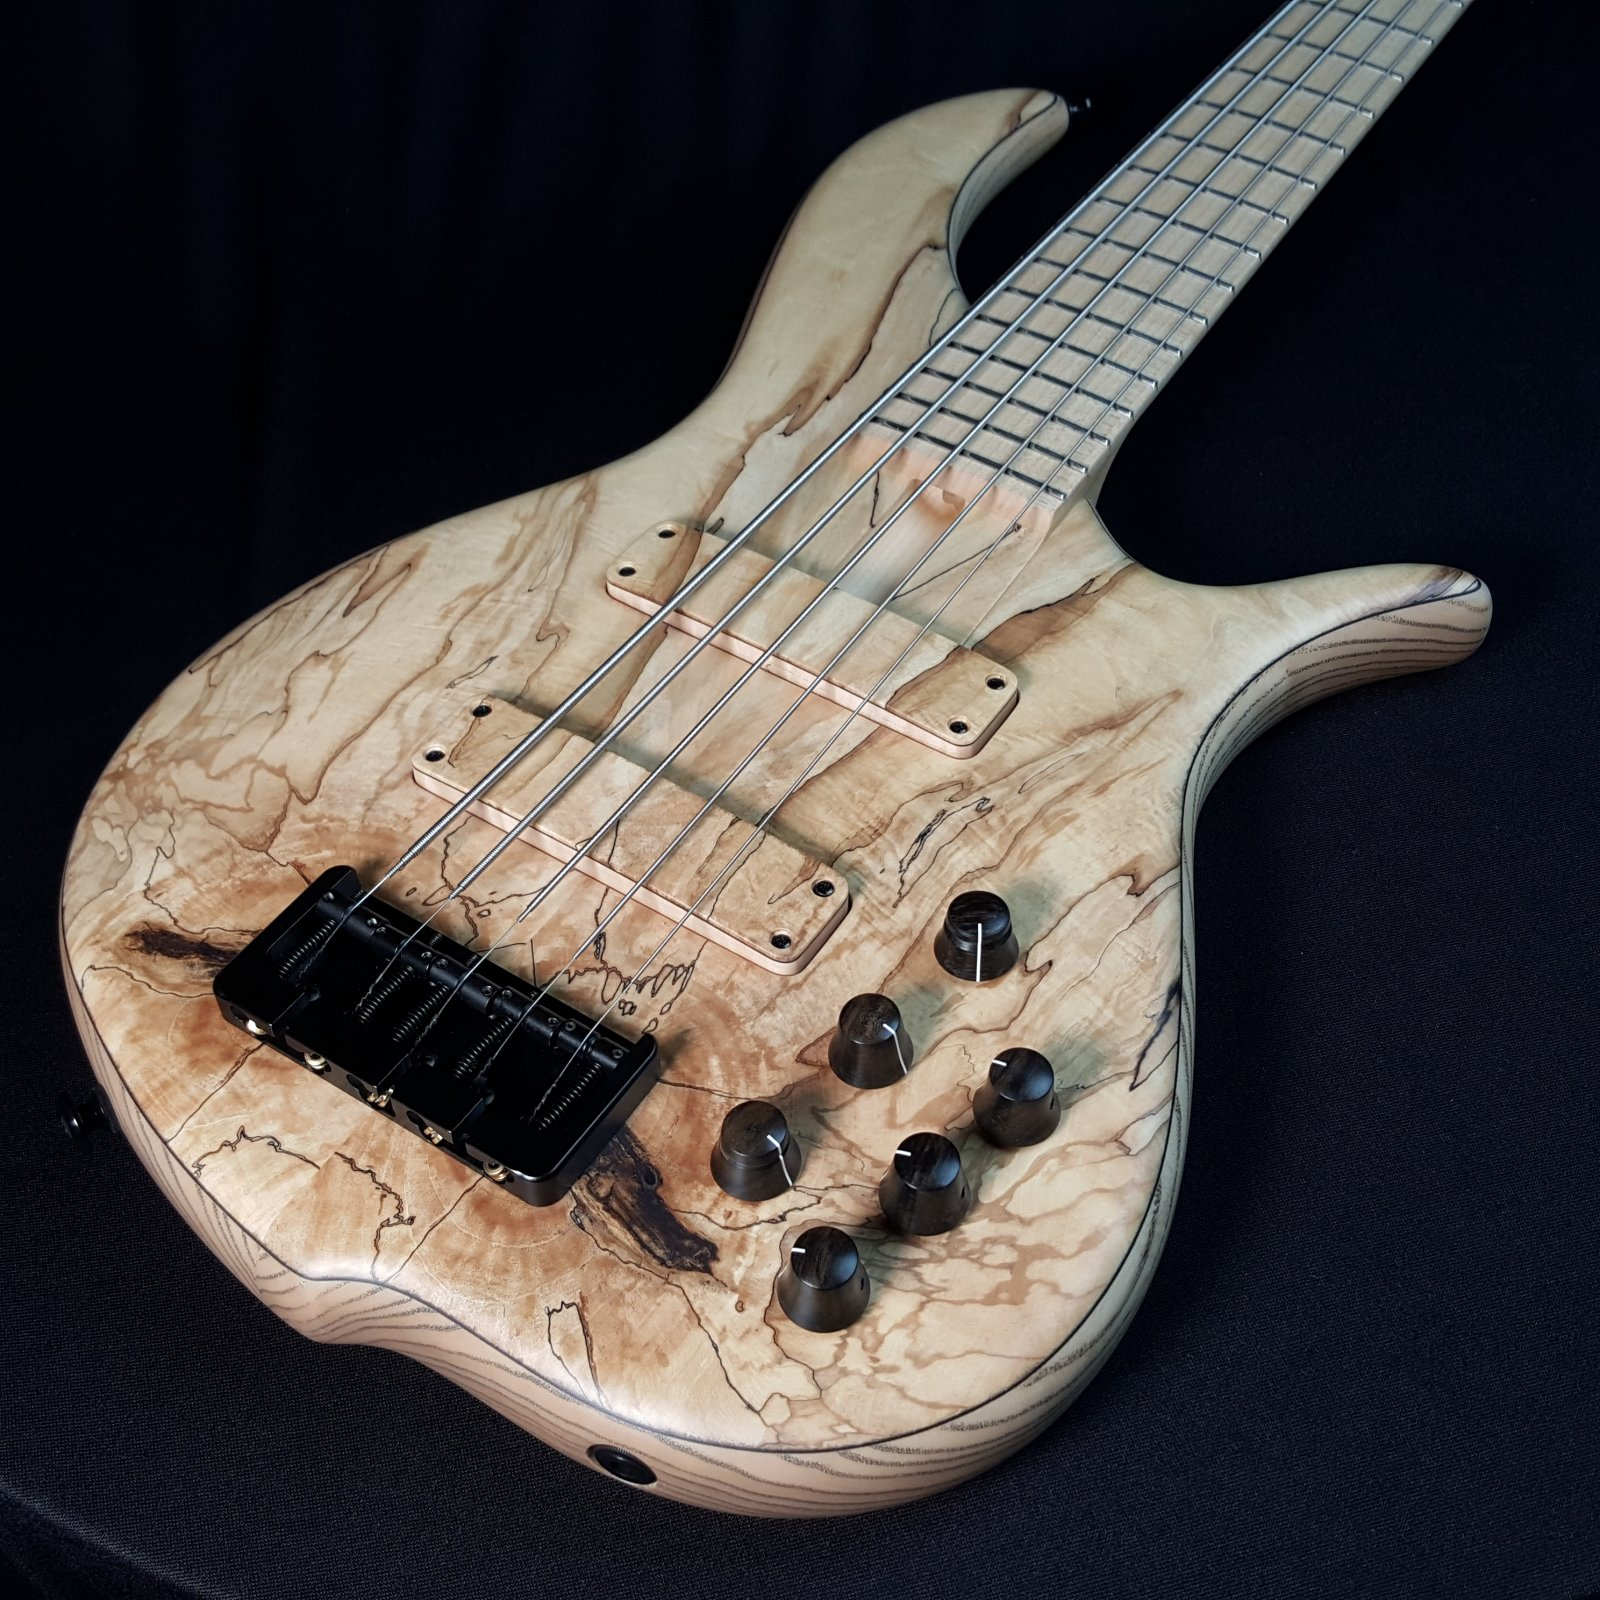 F Bass BN5 Spalted Maple Top 5 String Bass w/ Gig Bag